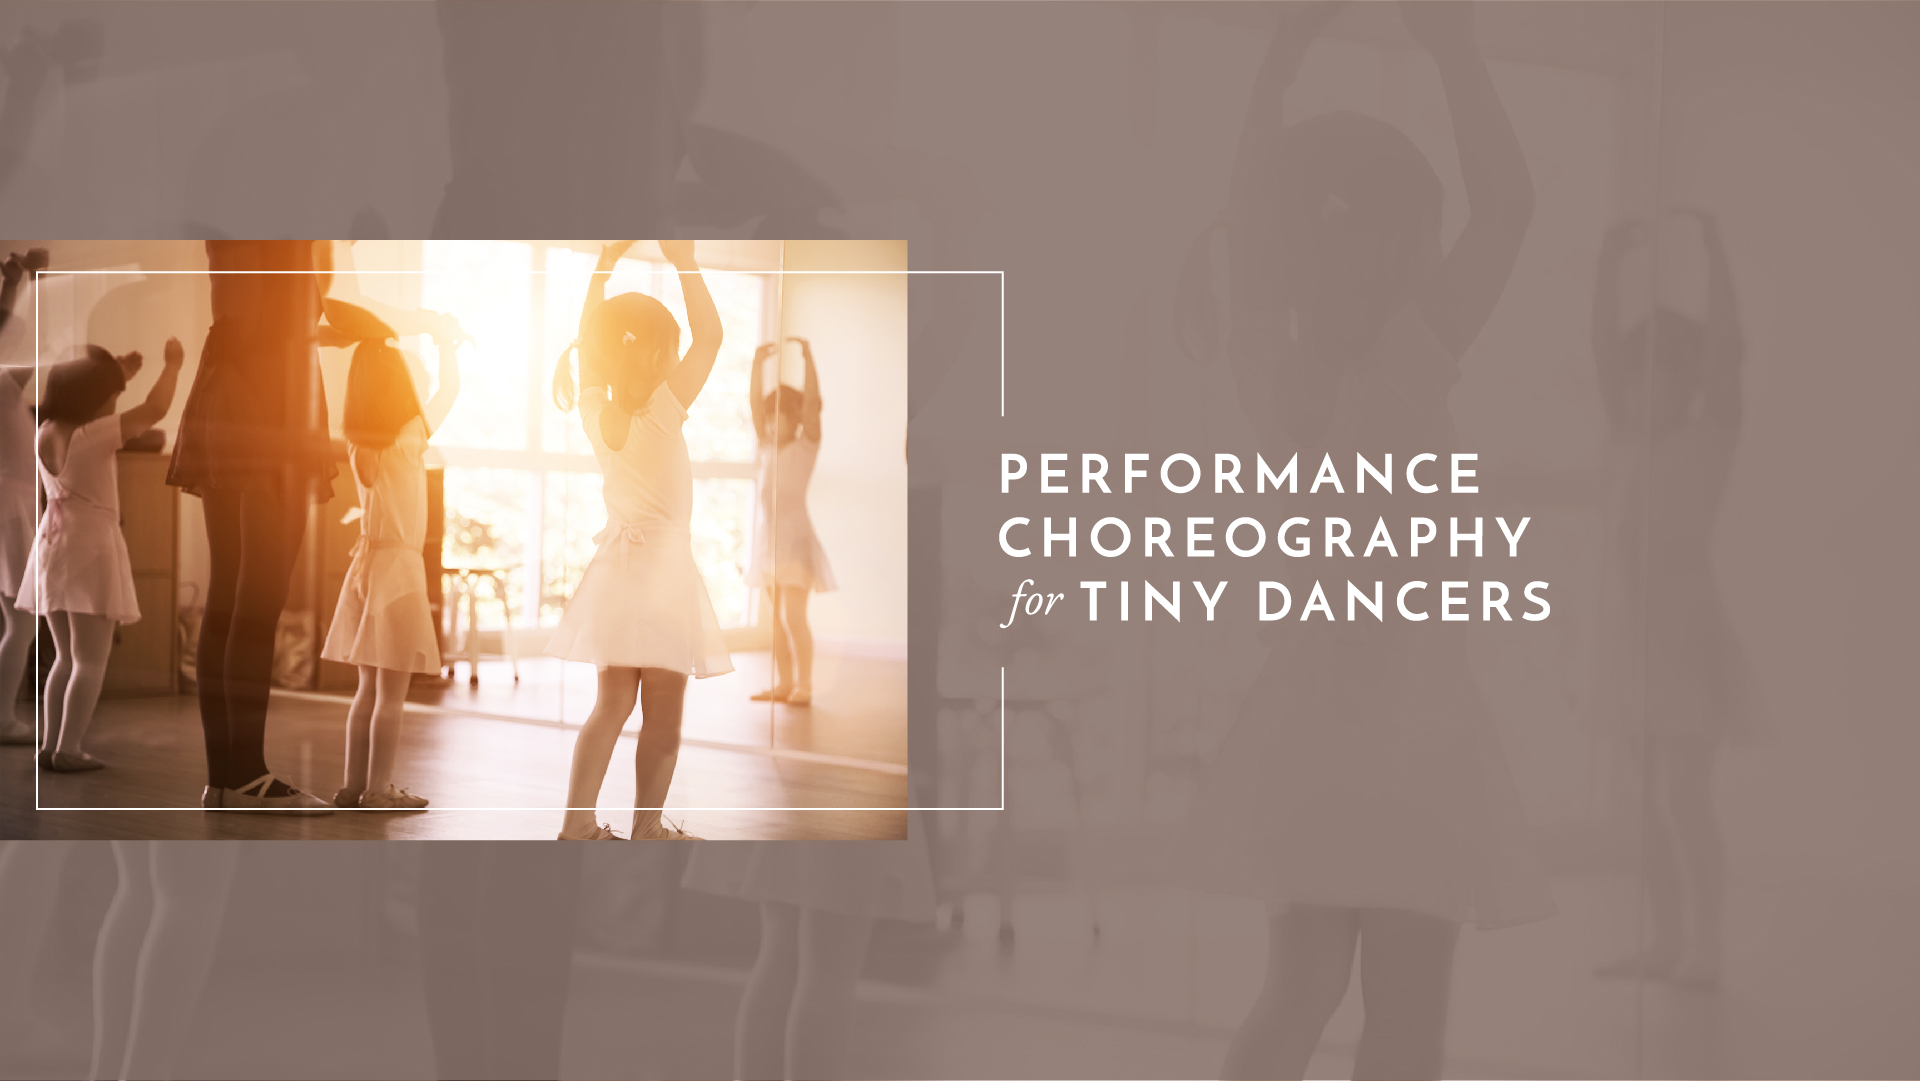 Choreography for Tiny Dancers